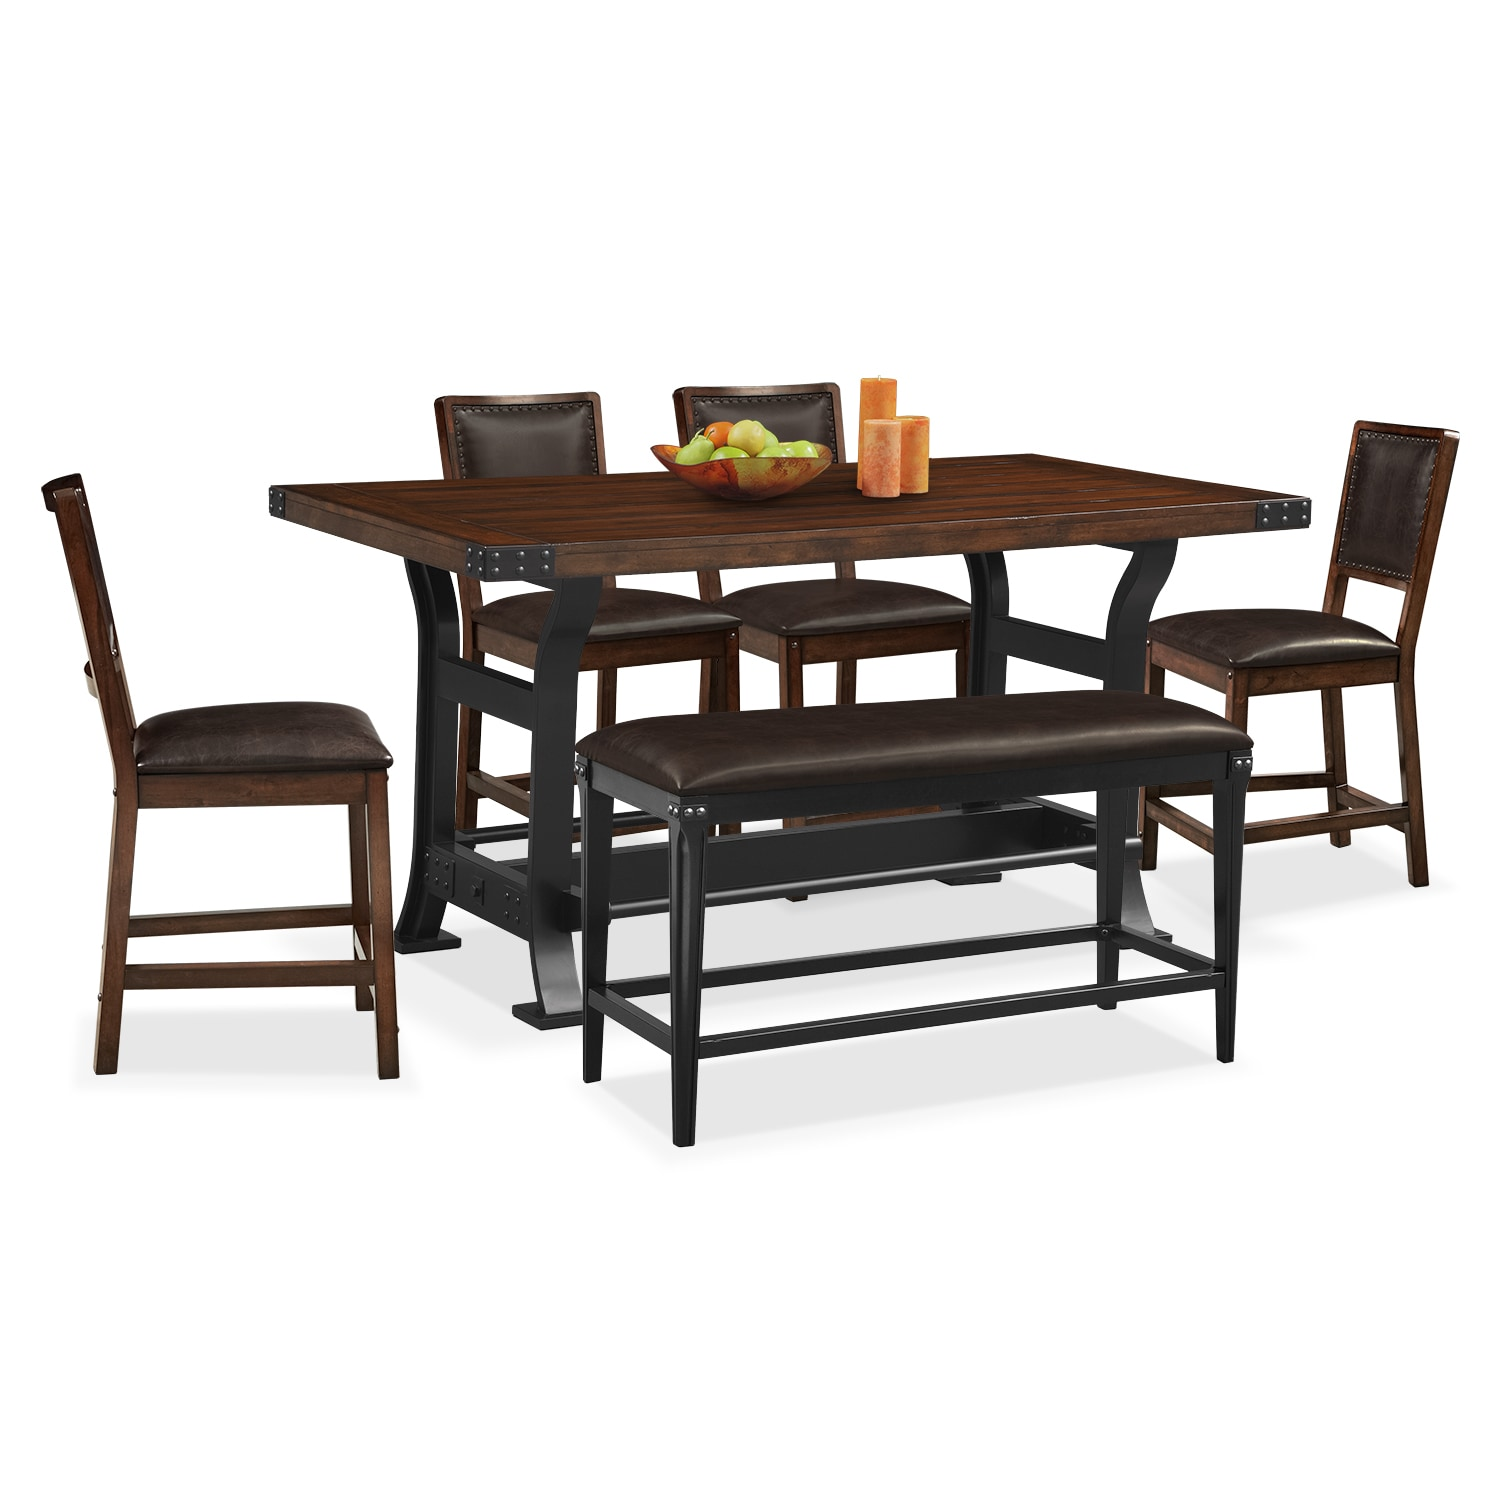 Newcastle 6 Pc. Counter-Height Dining Room w/ Bench